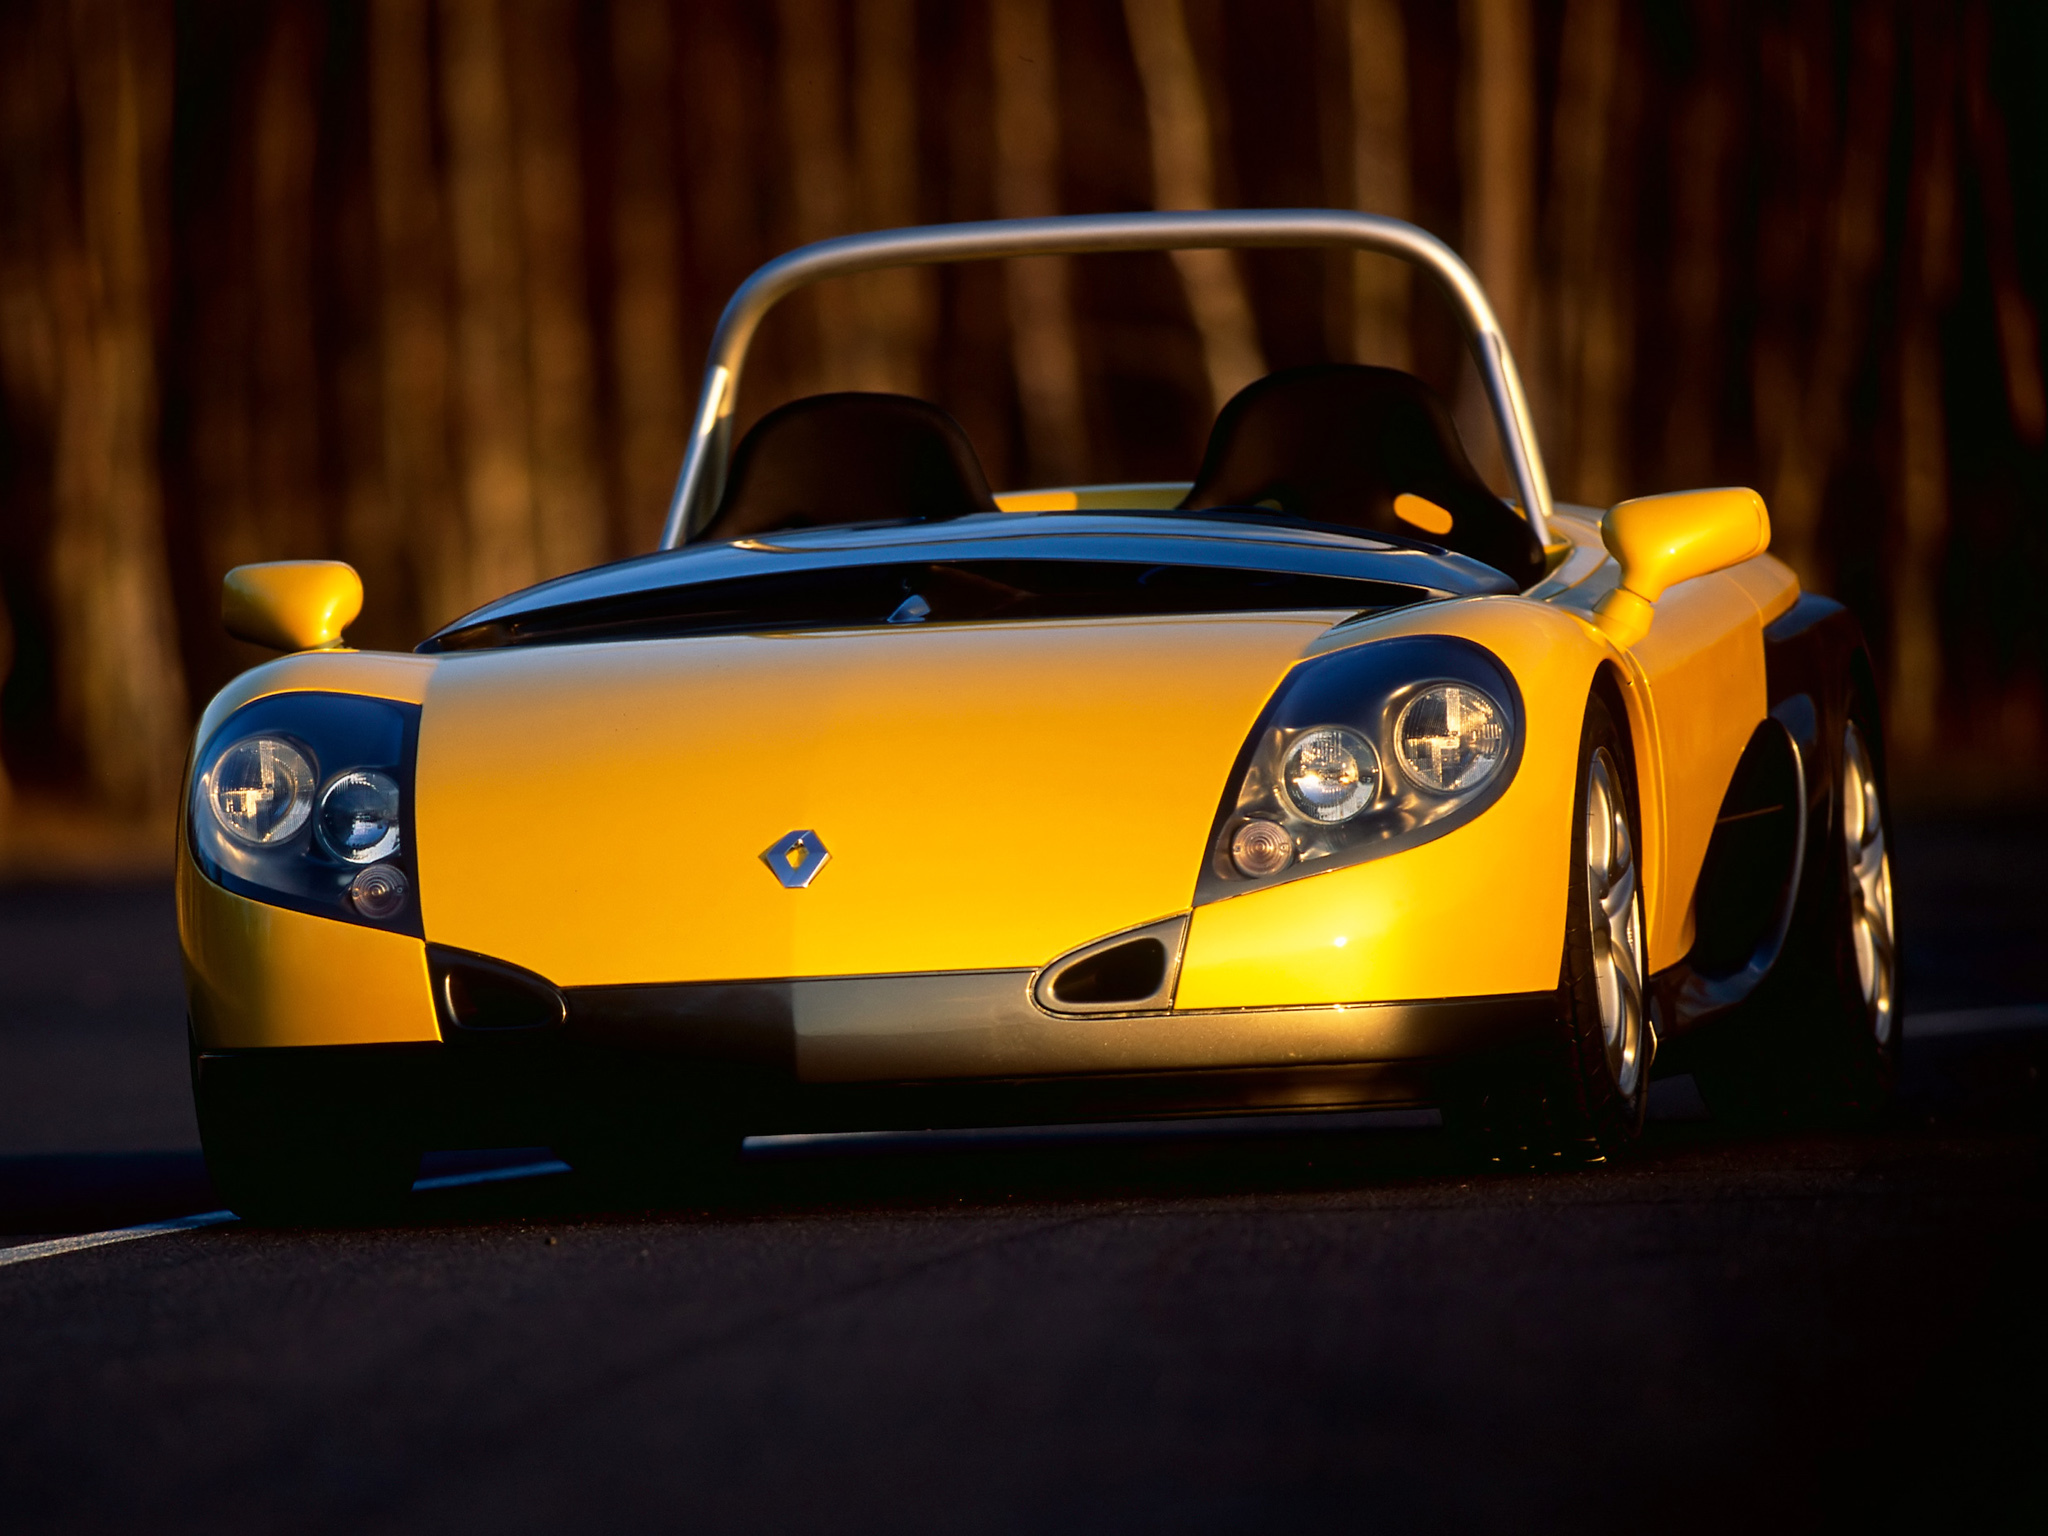 cars Renault cars HD Wallpaper